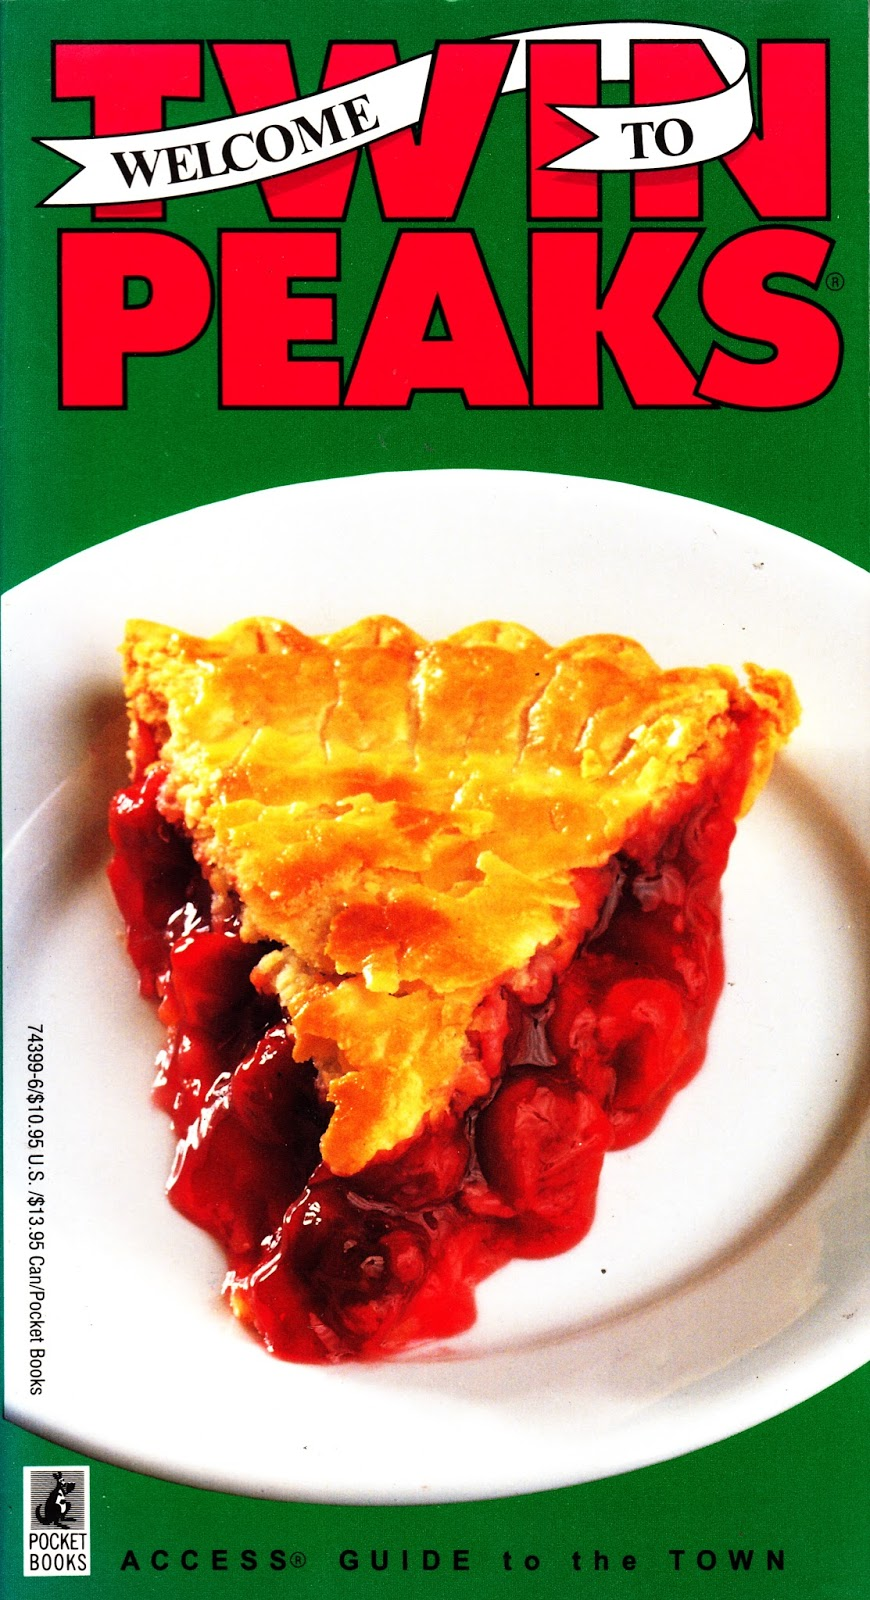 TWIN-PEAKS_ACCESS-GUIDE_1991_FRONT